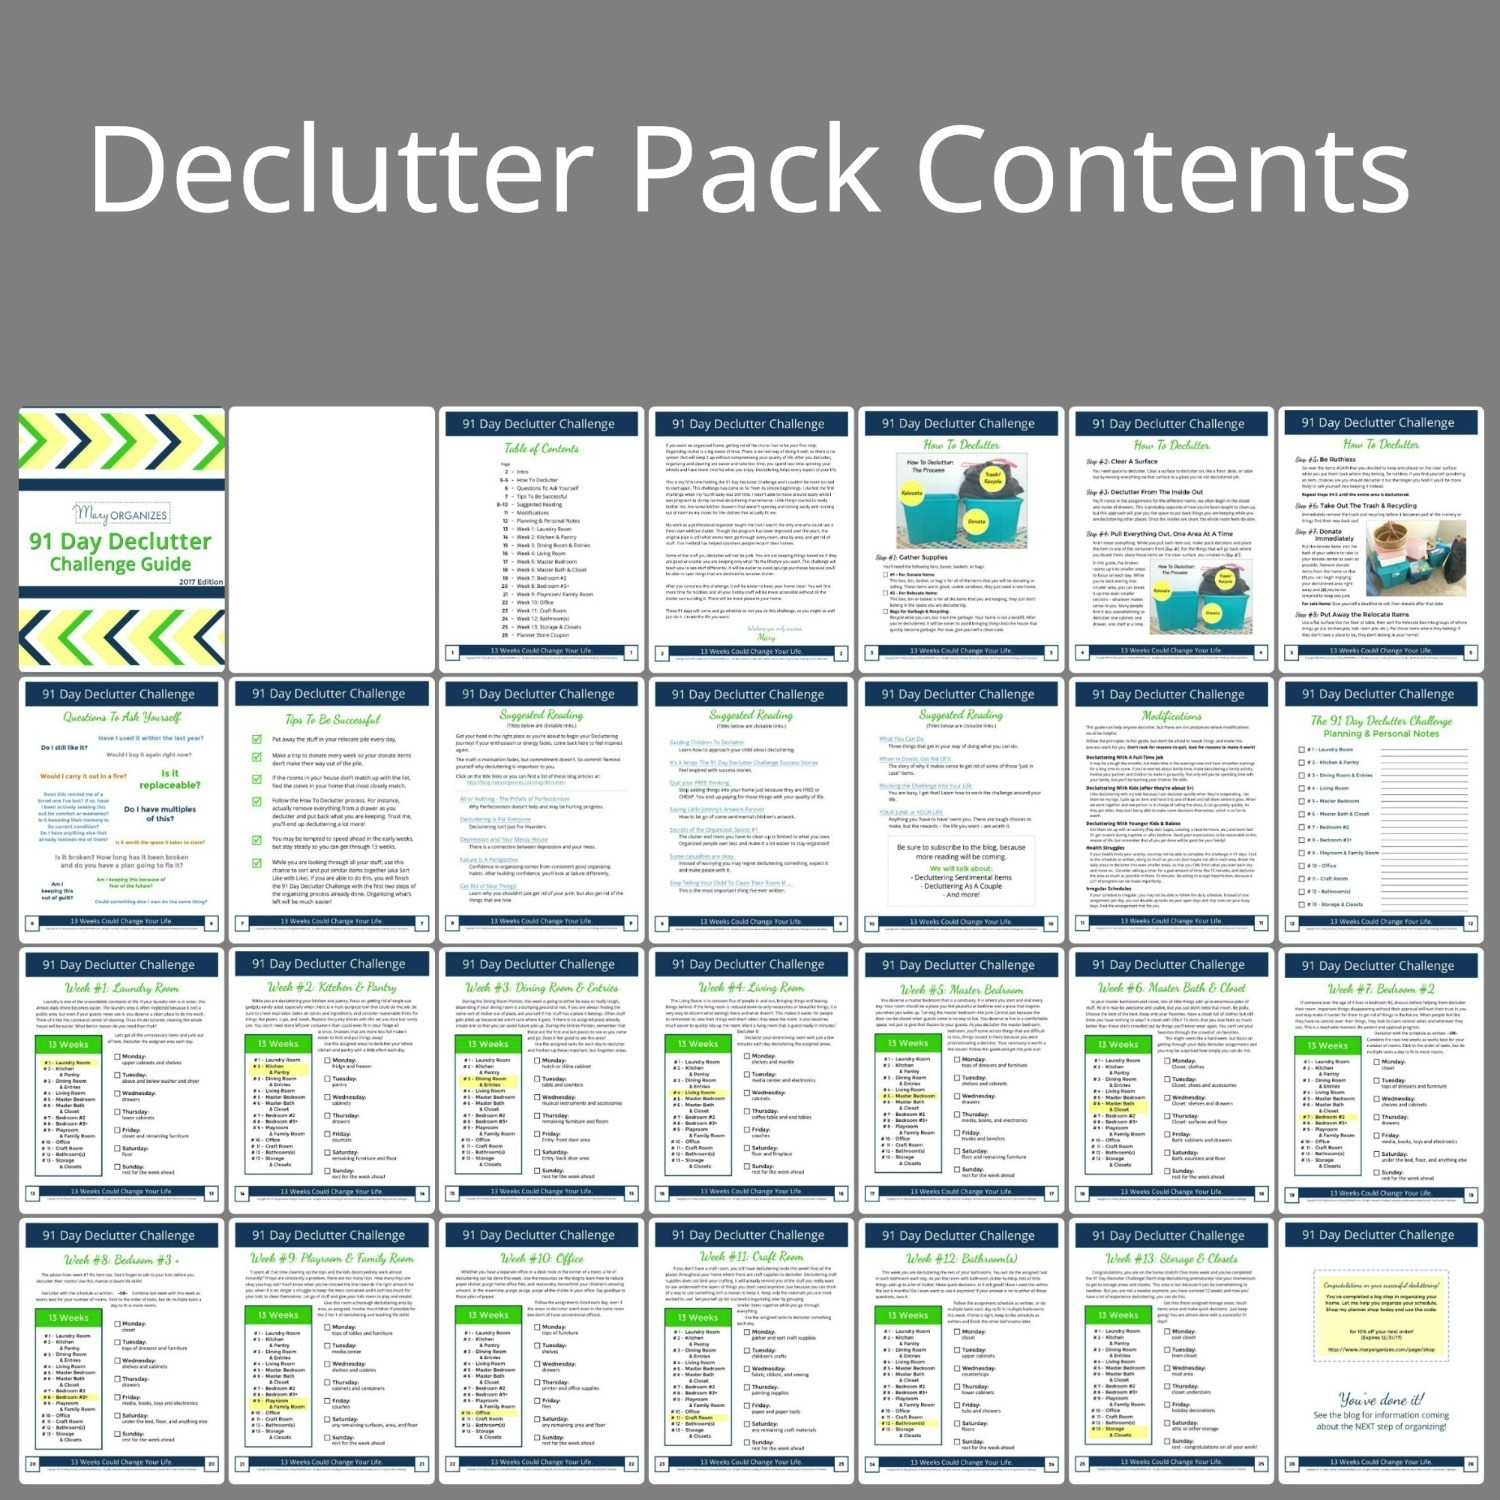 Can be printed 1-sided or 2-sided, black and white, or full color: Has all the supplemental pages needed for a successful 91 Day Declutter